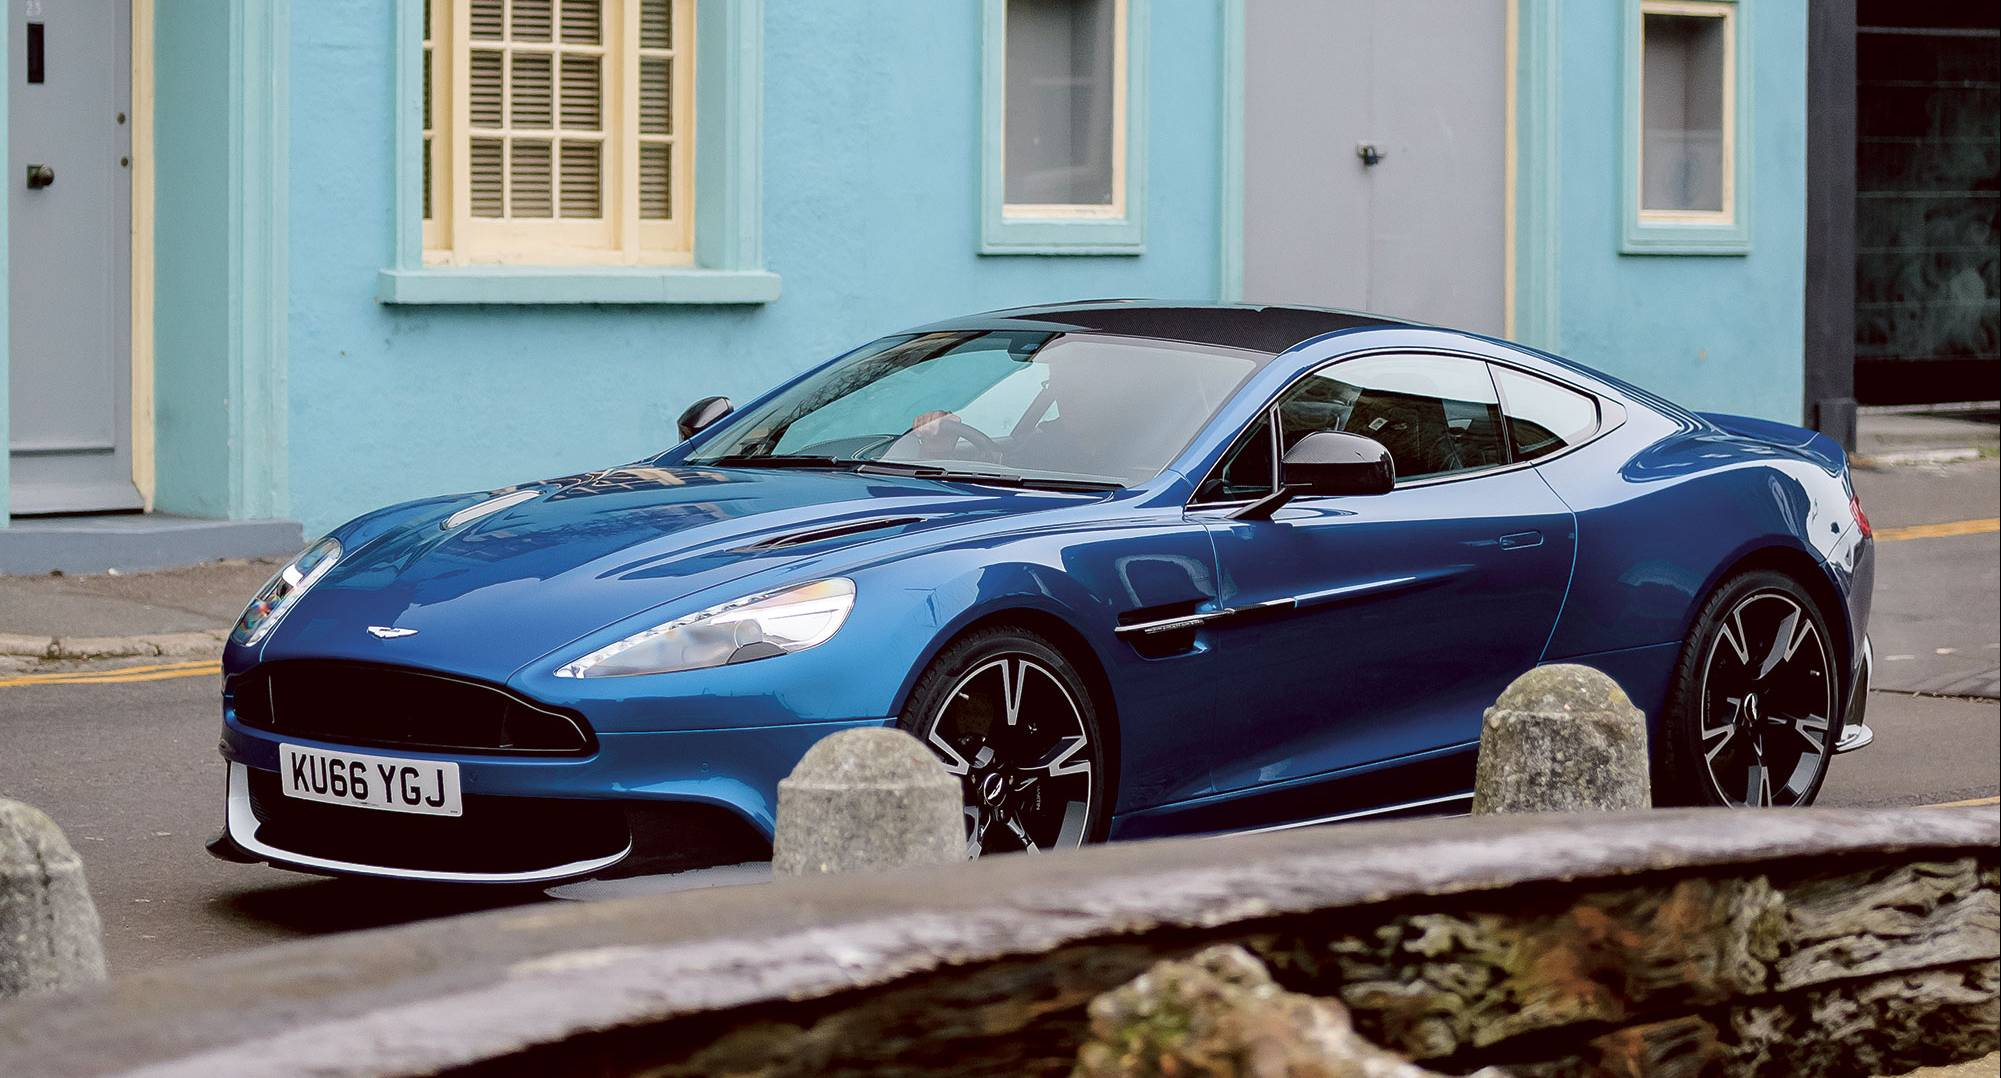 Driving The Aston Martin Vanquish S In The Uk S Cinque Ports